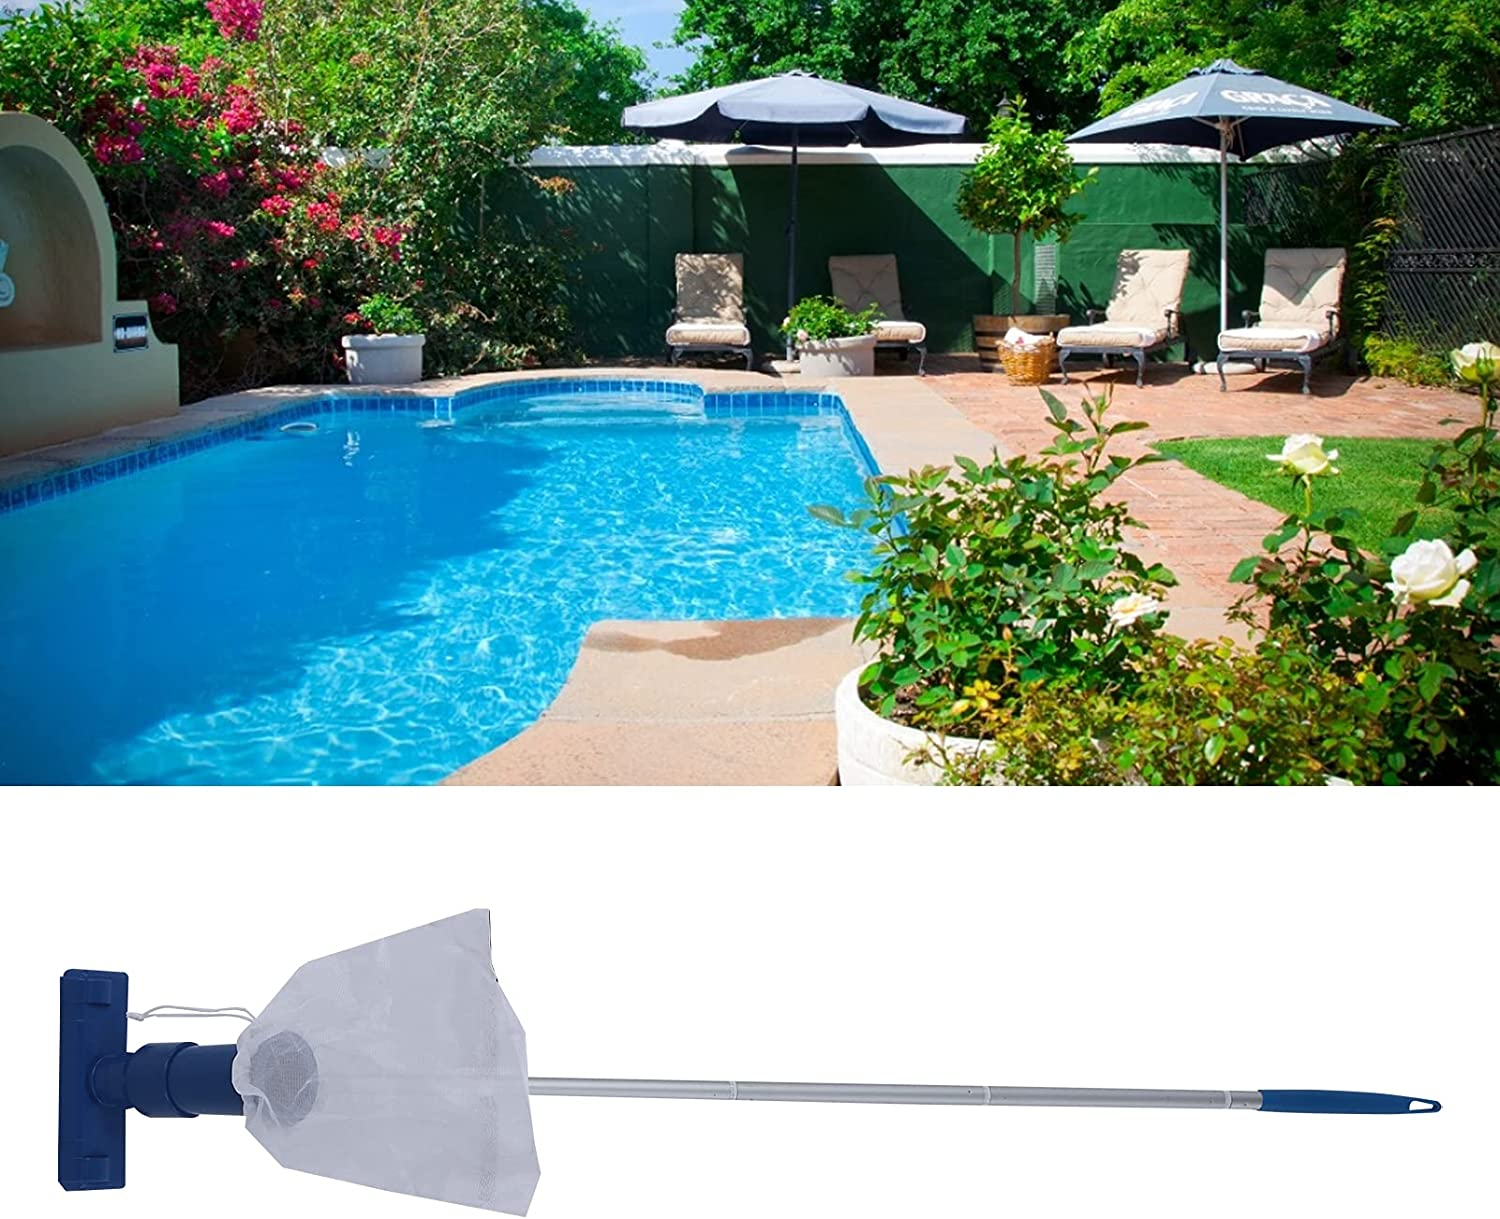 01 Swimming Pool Vacuum Tool Easy Spas f 2021 for Super-cheap to Use